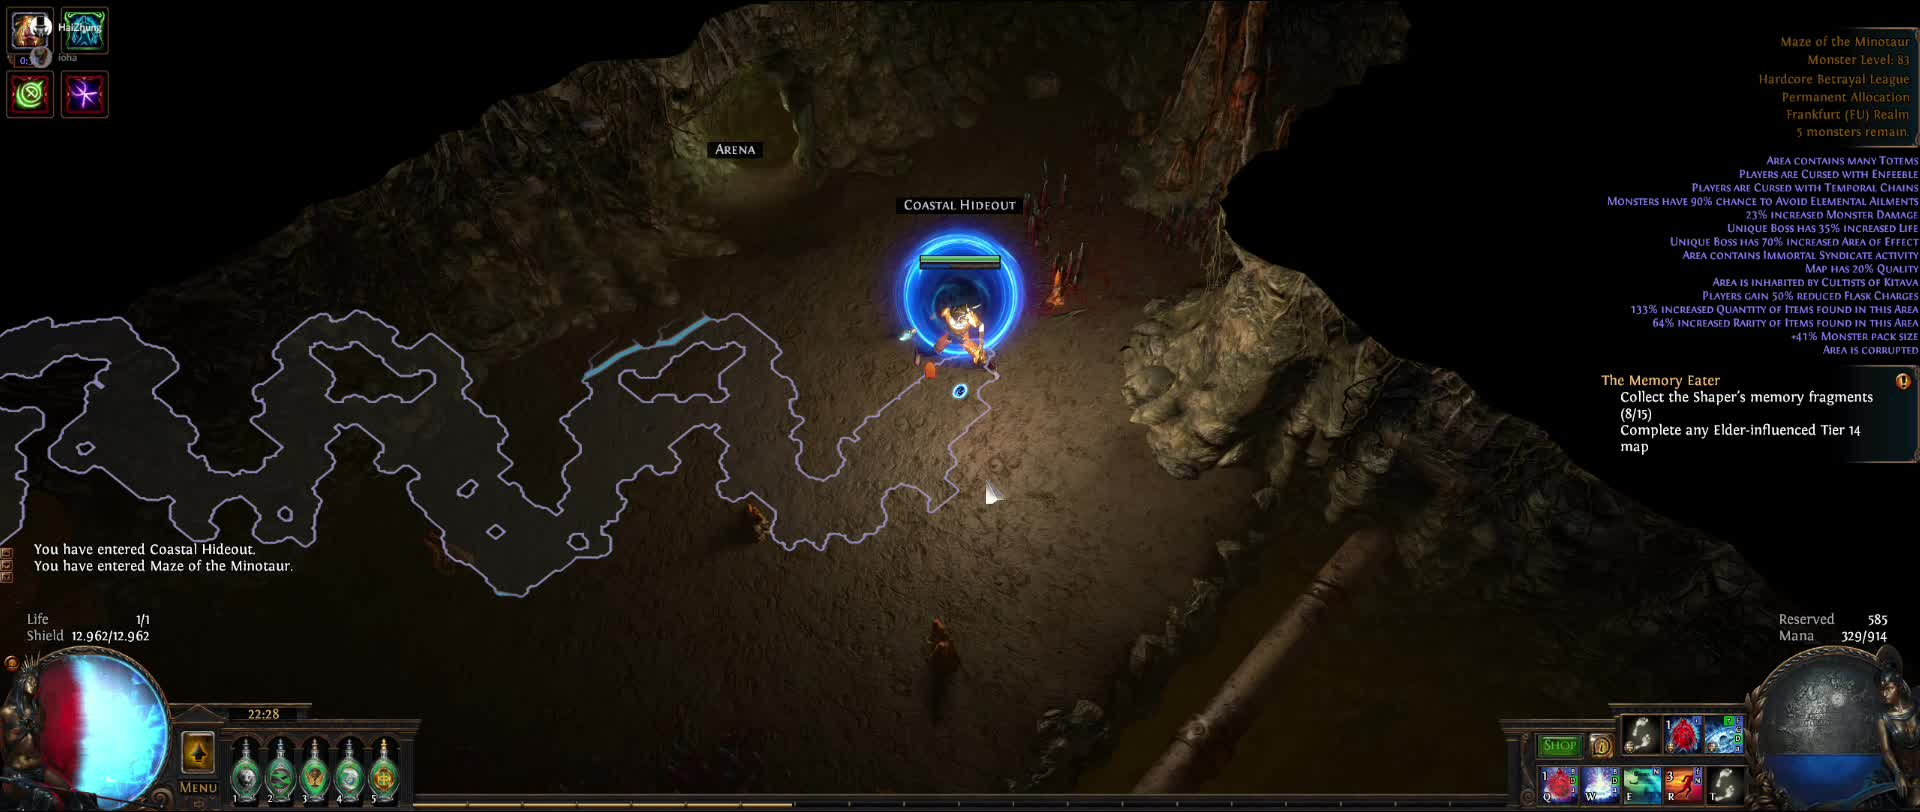 pathofexile, Replay 2019.02.03-22.29 GIFs